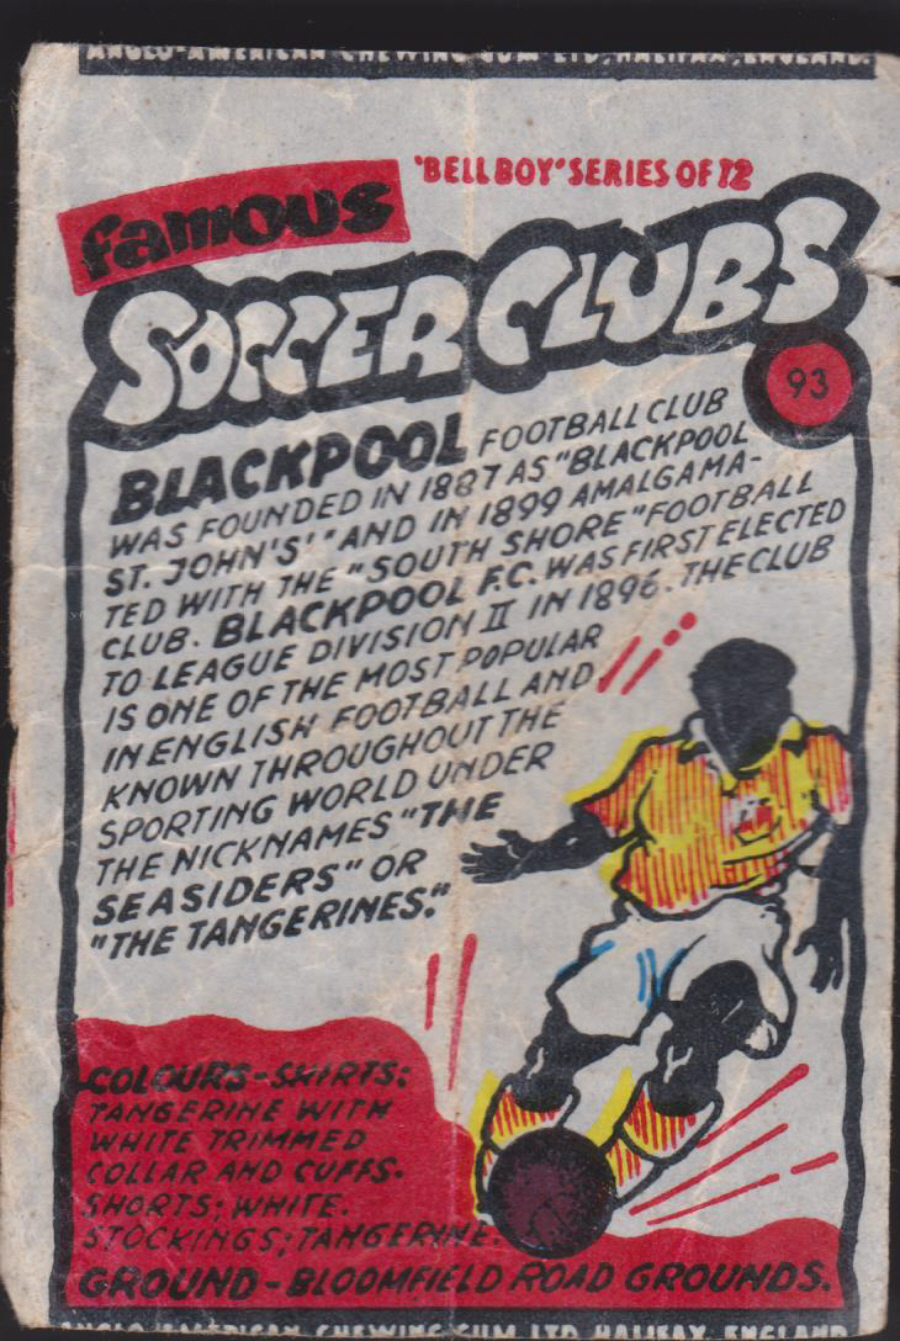 Anglo-American-Chewing-Gum-Wax-Wrapper-Famous-Soccer-Clubs-No-93 - Blackpool